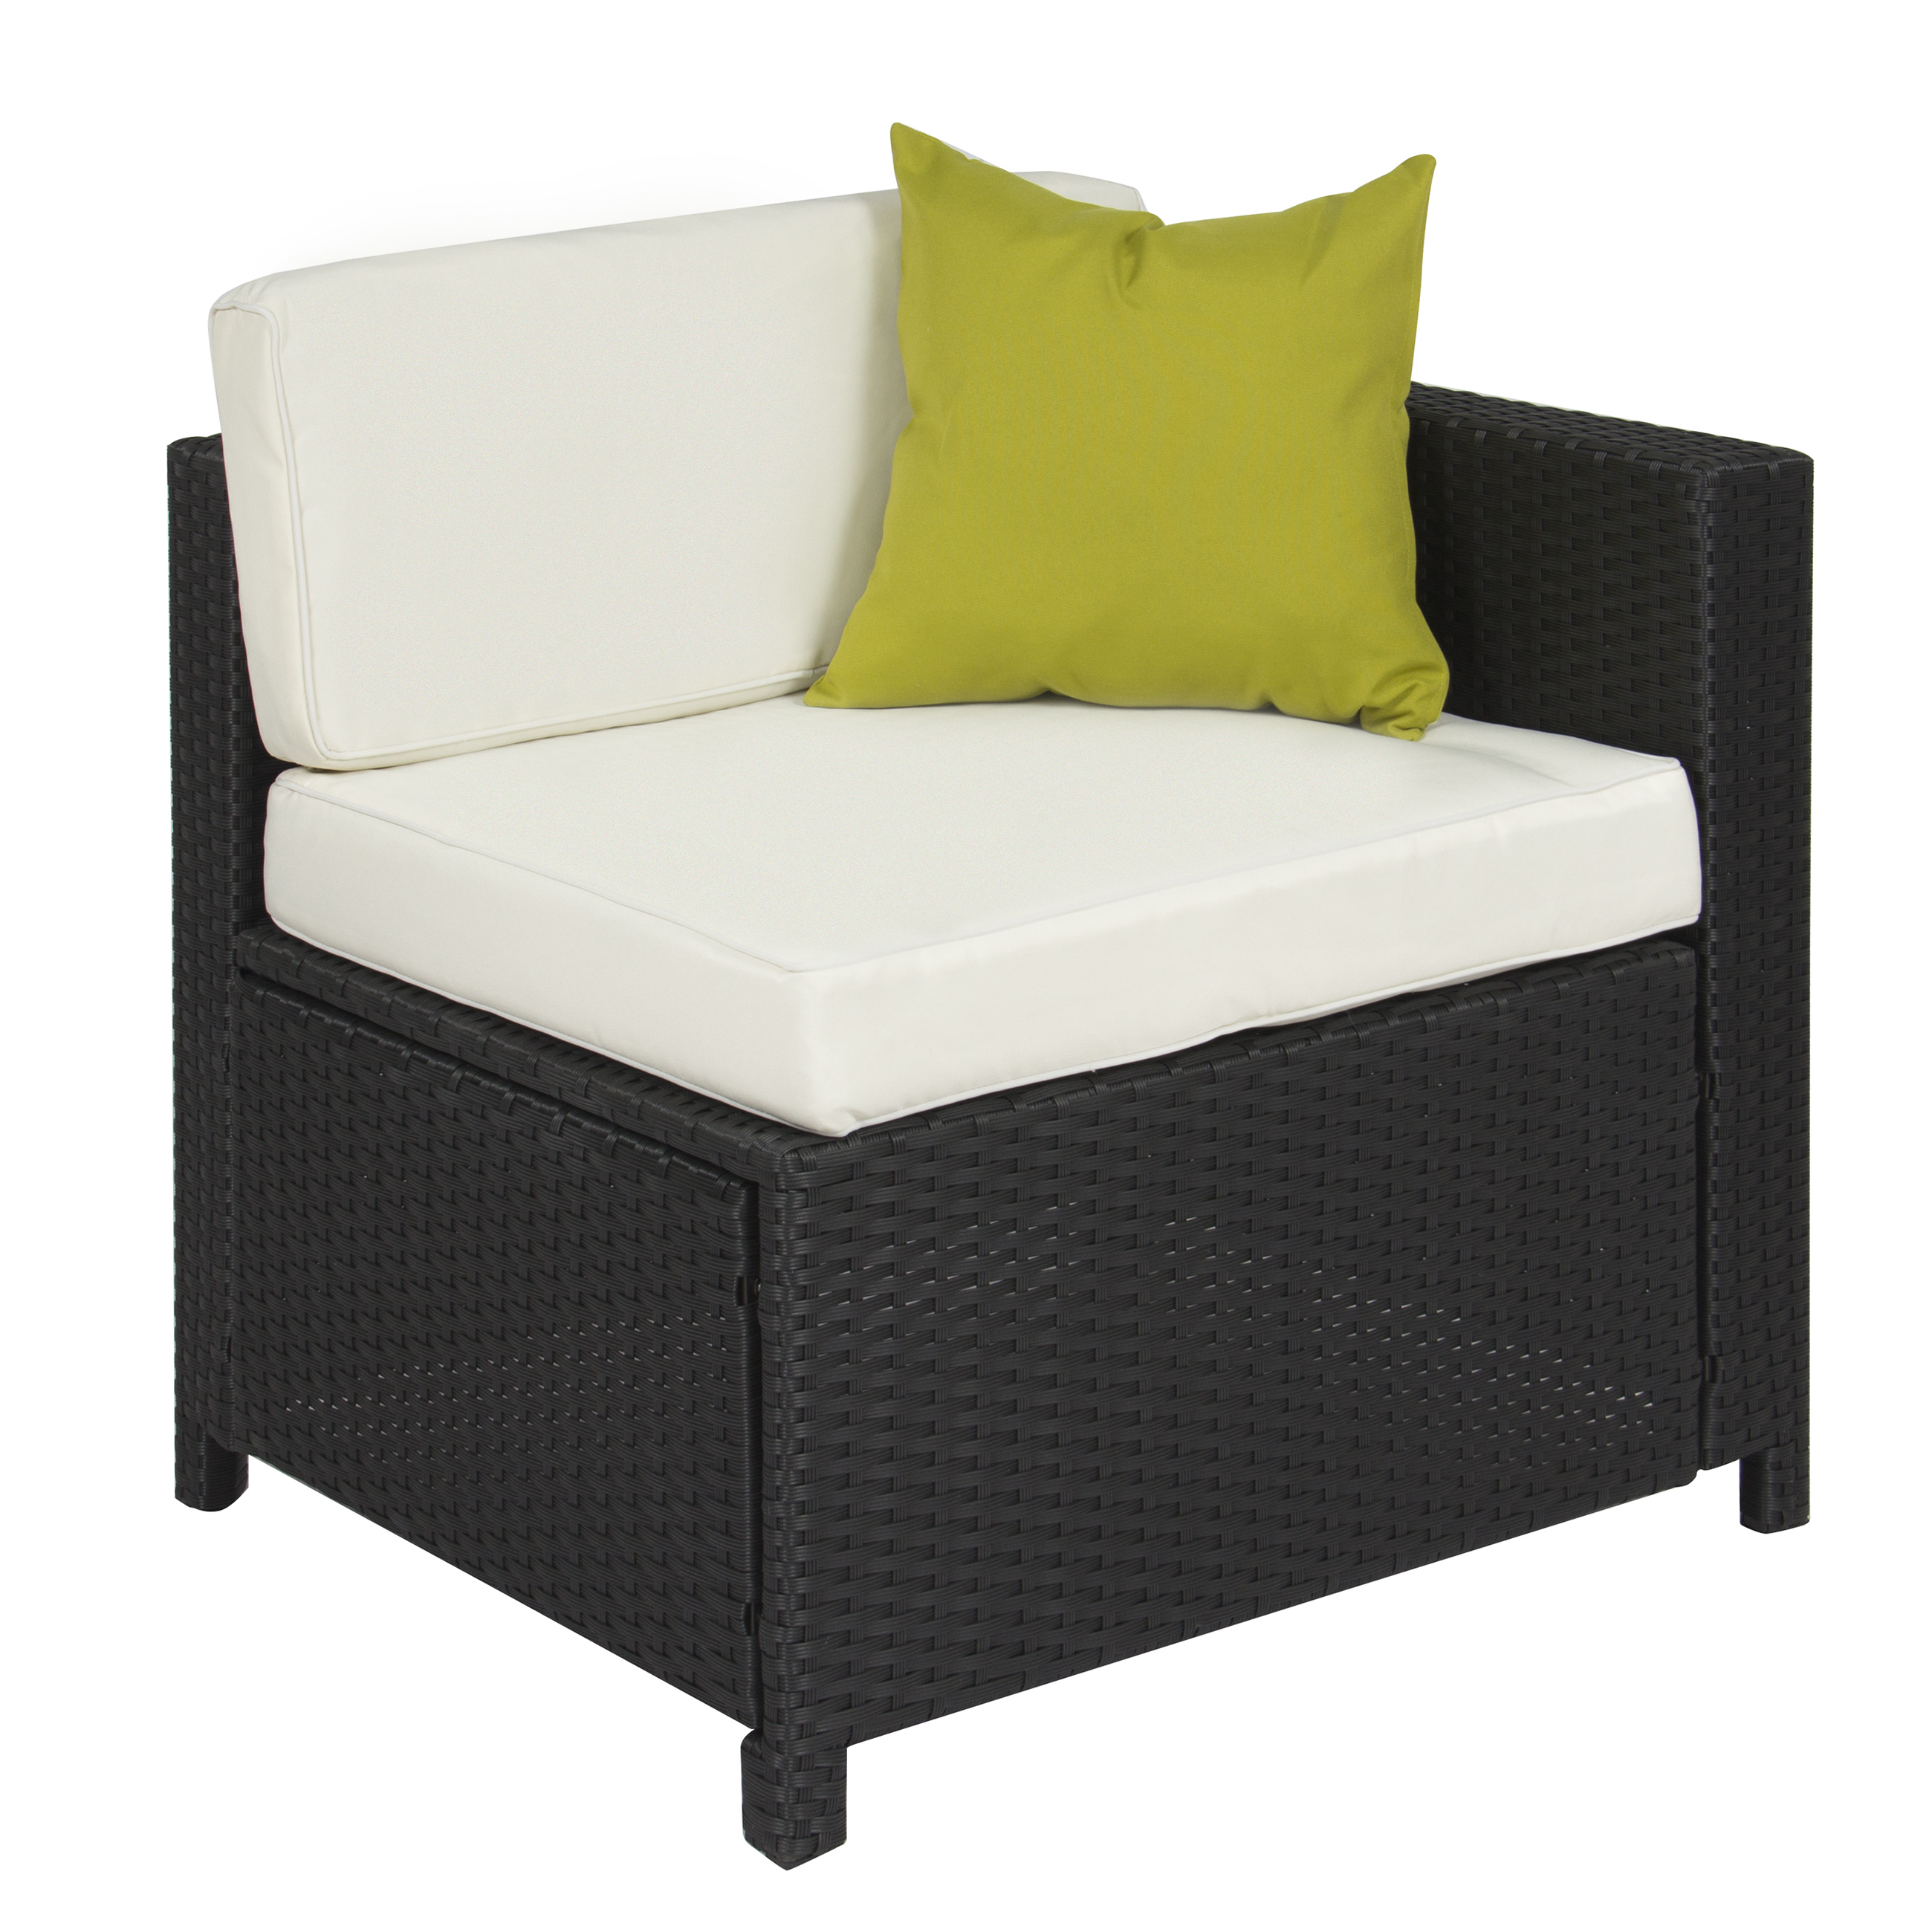 Outdoor Patio Furniture Cushioned 5PC Rattan Wicker Aluminum Frame Sectional  Sofa Set   Walmart.com